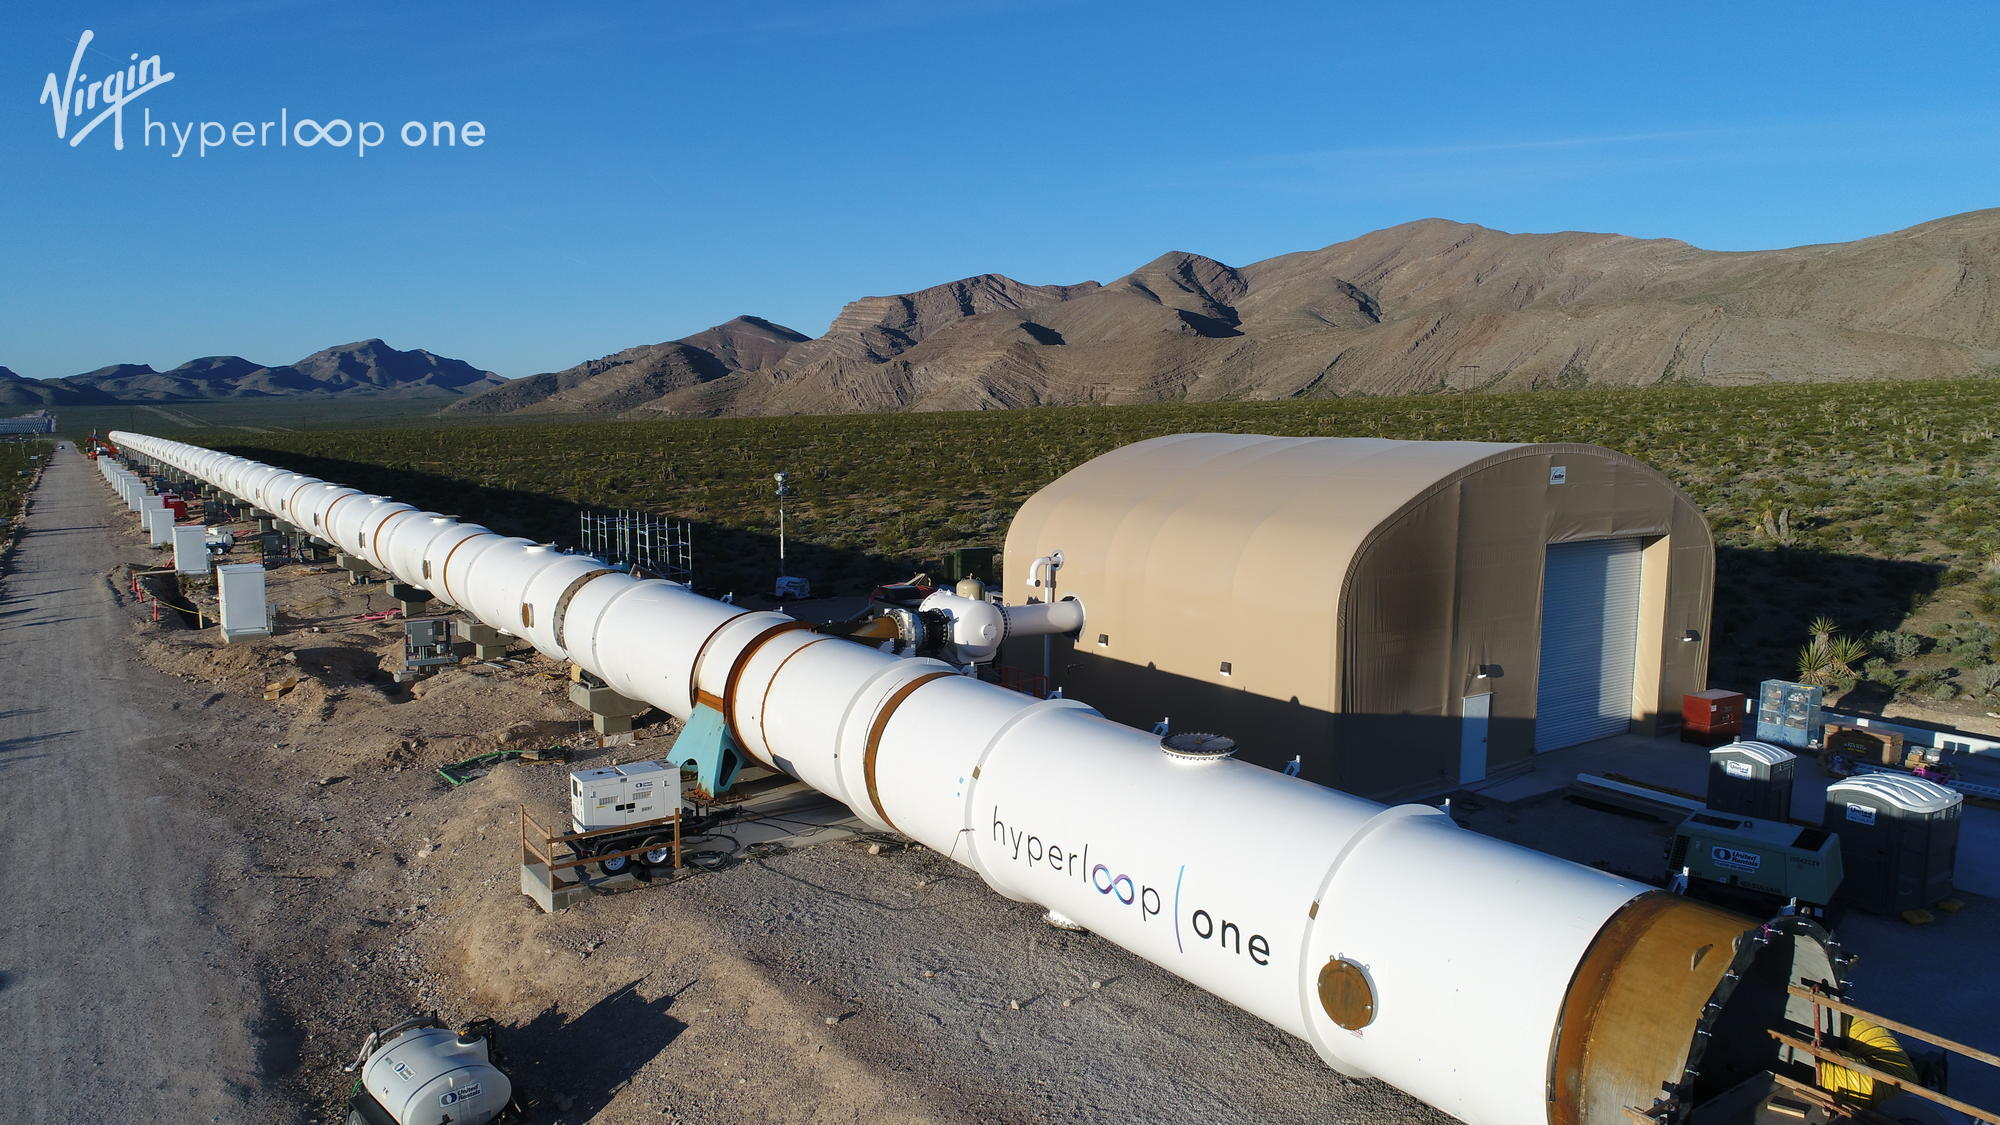 hyperloop construction